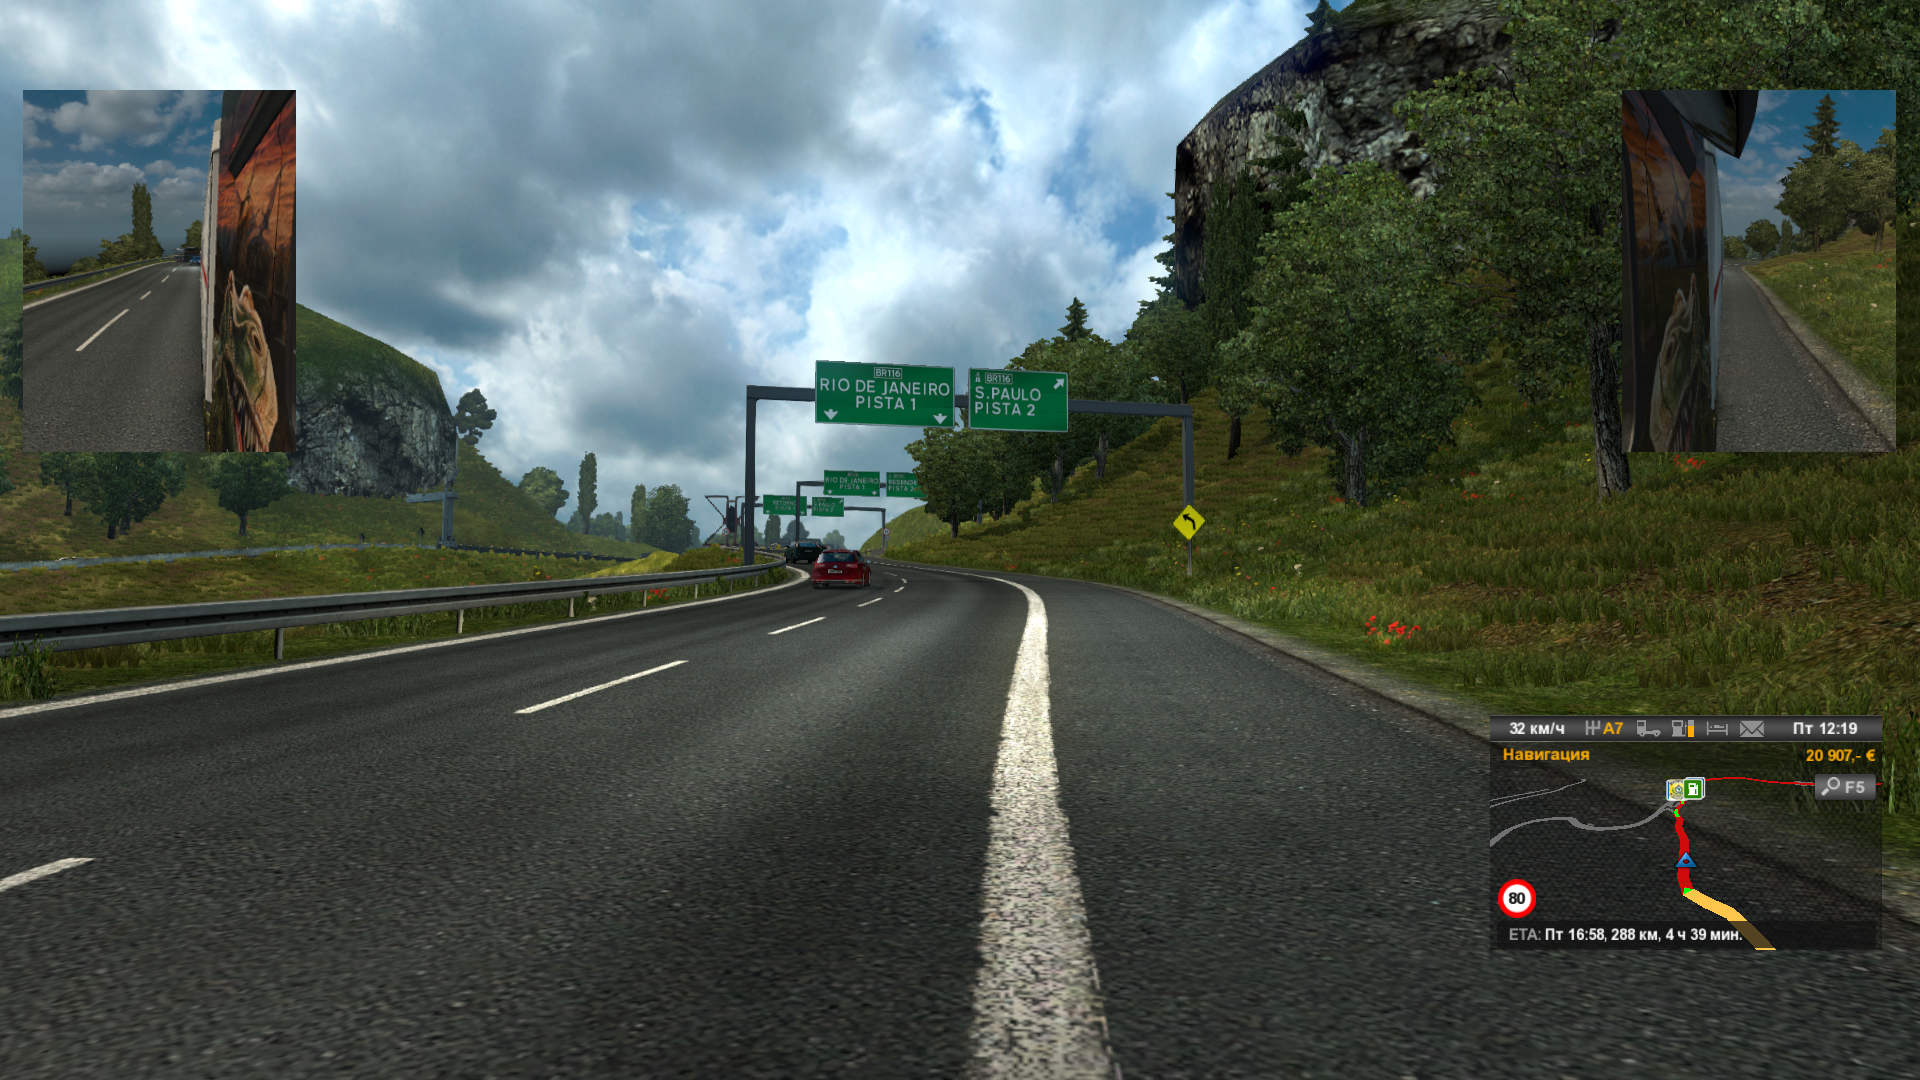 ets2_00023.png - -